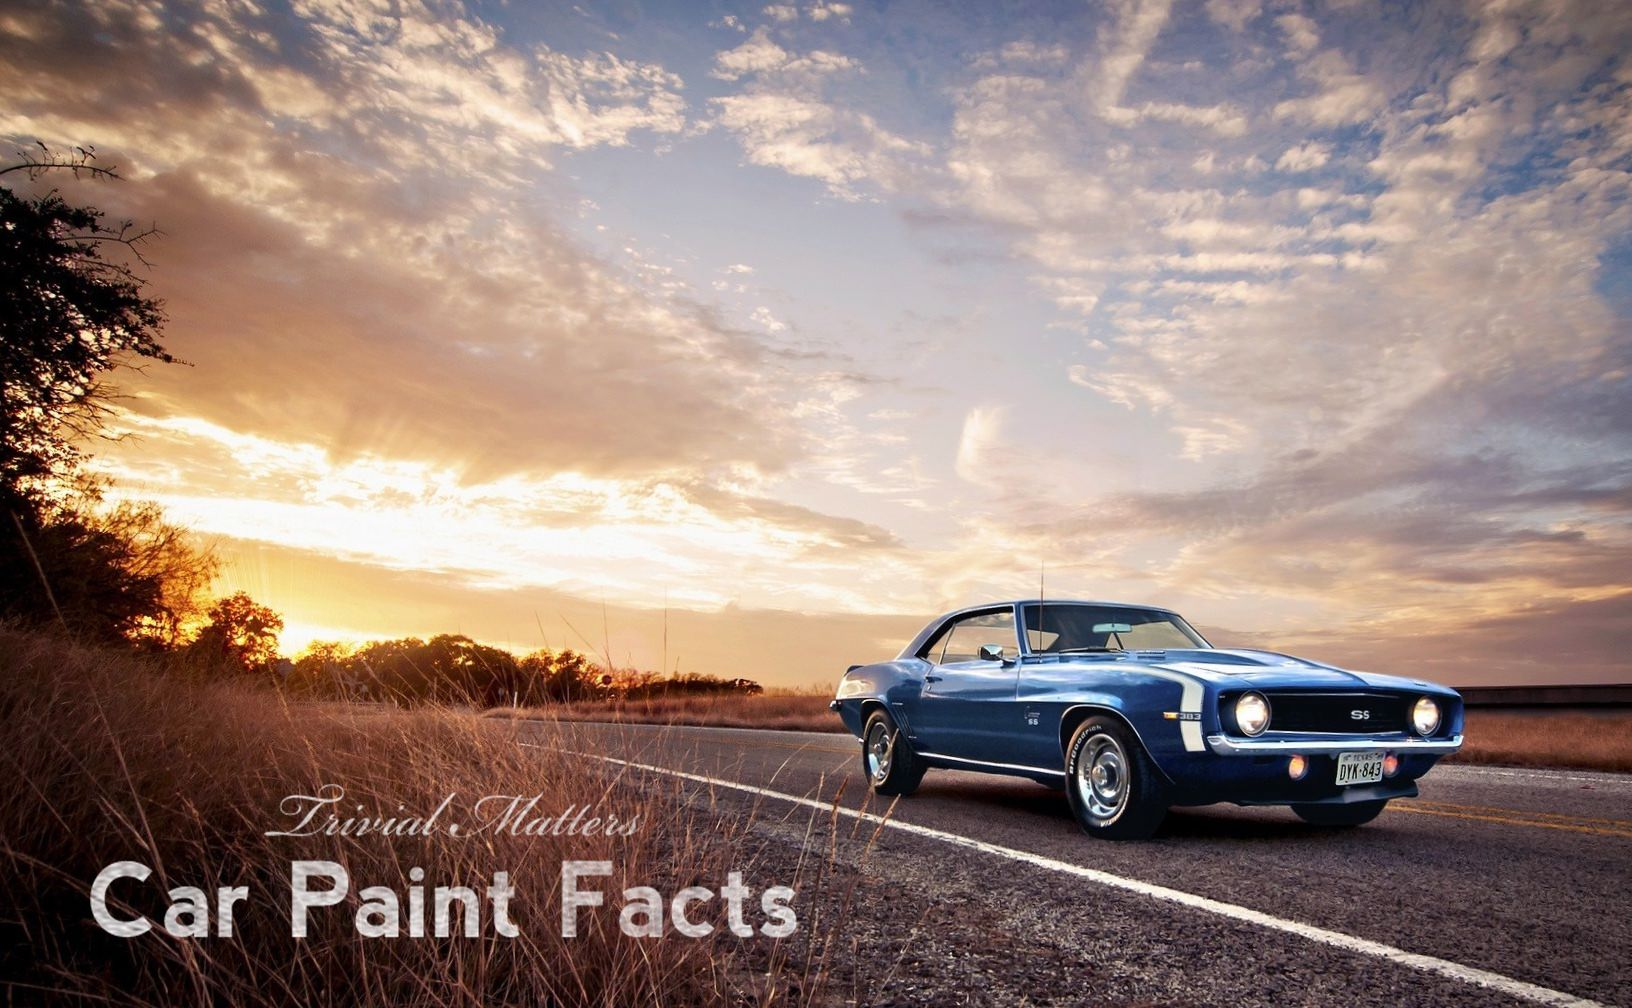 Trivial Matters: Crazy Car Paint Trivia